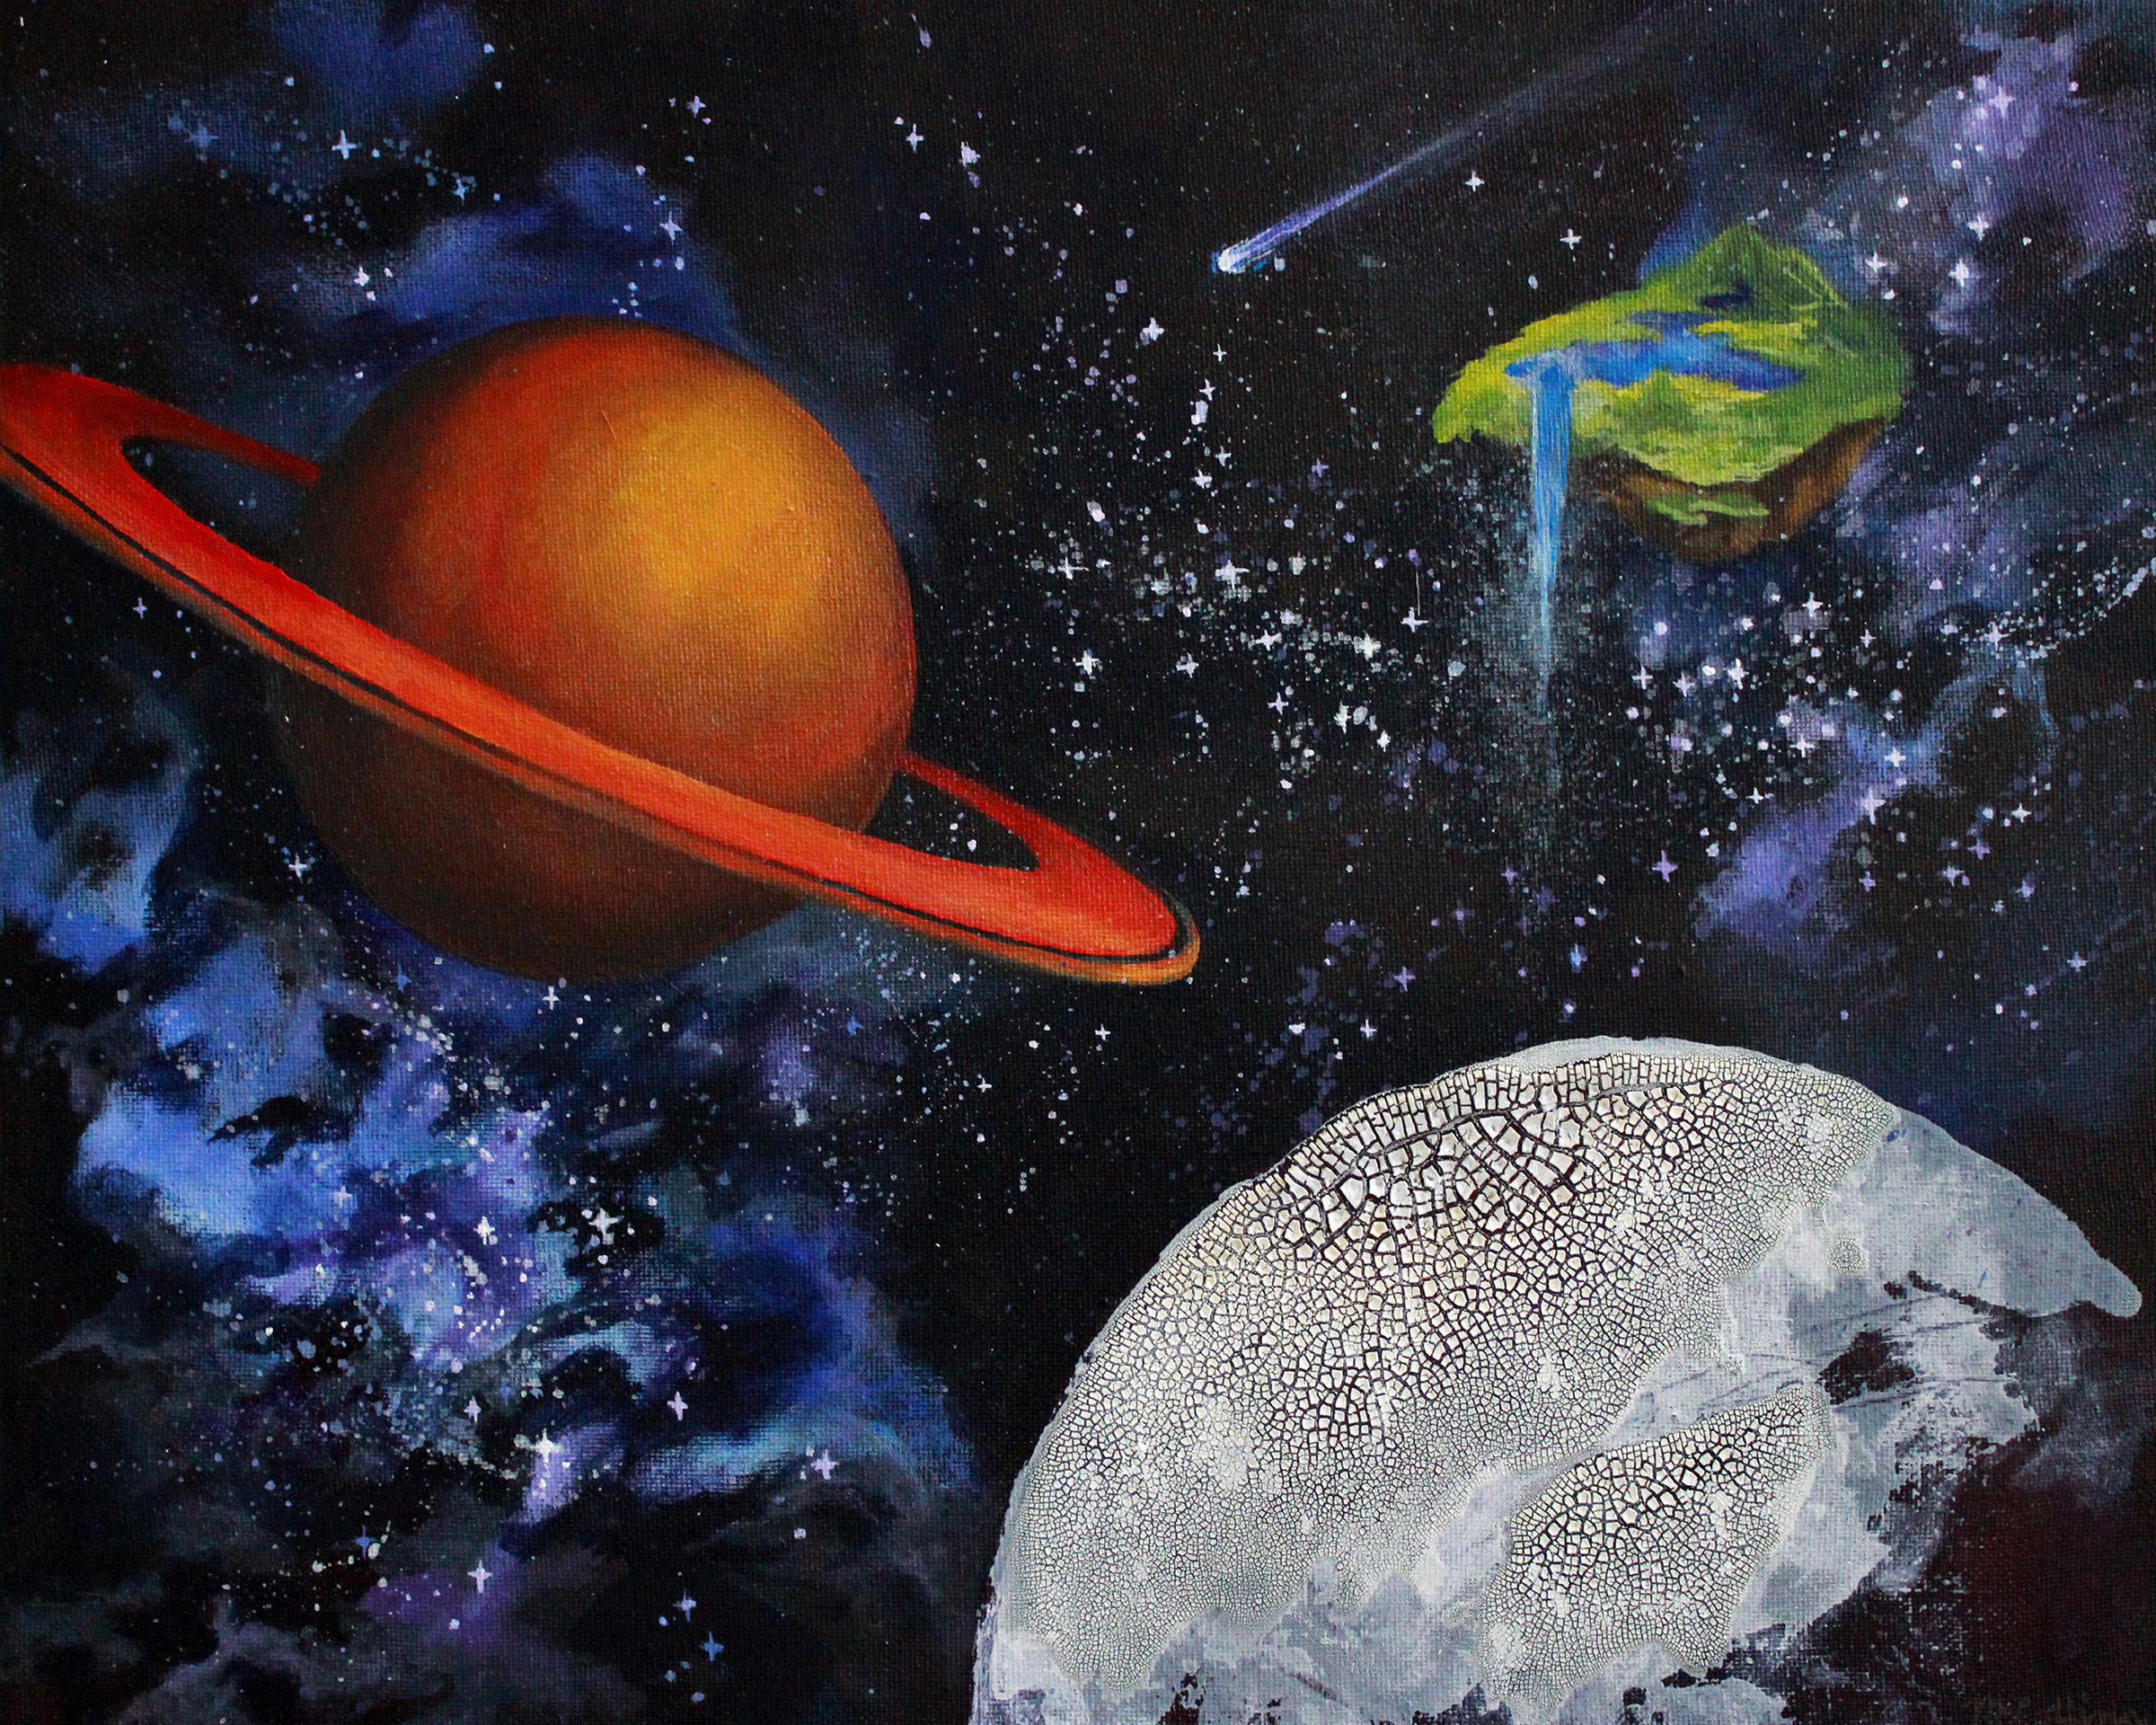 Megcutspaper_Painting_ Planet_Space_Scifi_Floating_Land_Ice_.jpg